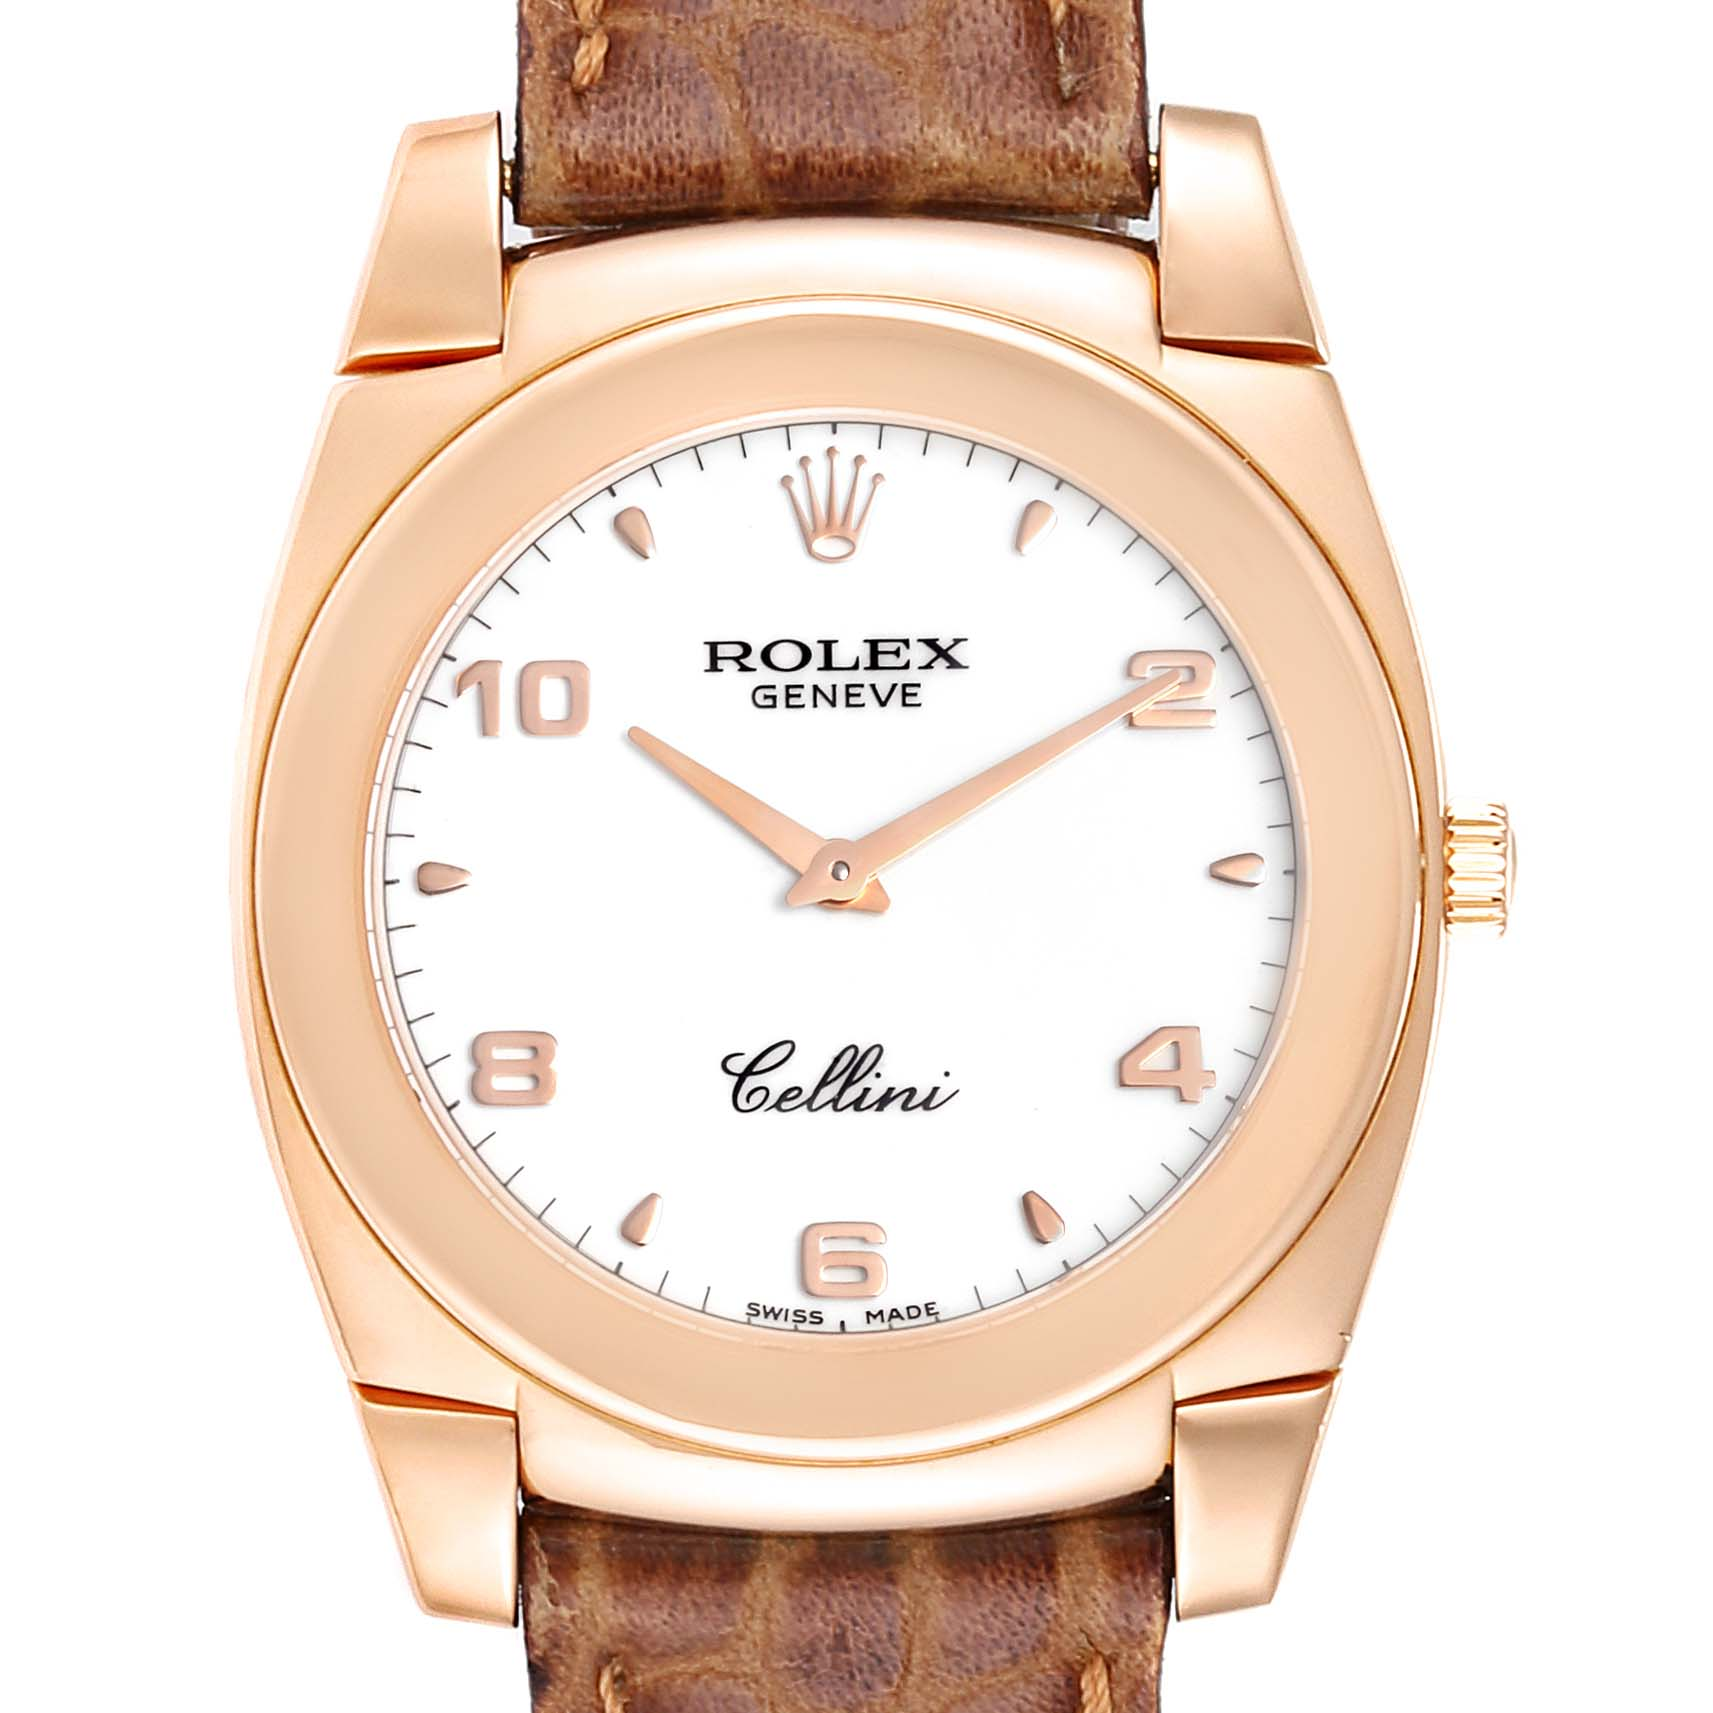 Photo of Rolex Cellini Cestello 18K Rose Gold White Dial Mens Watch 5330